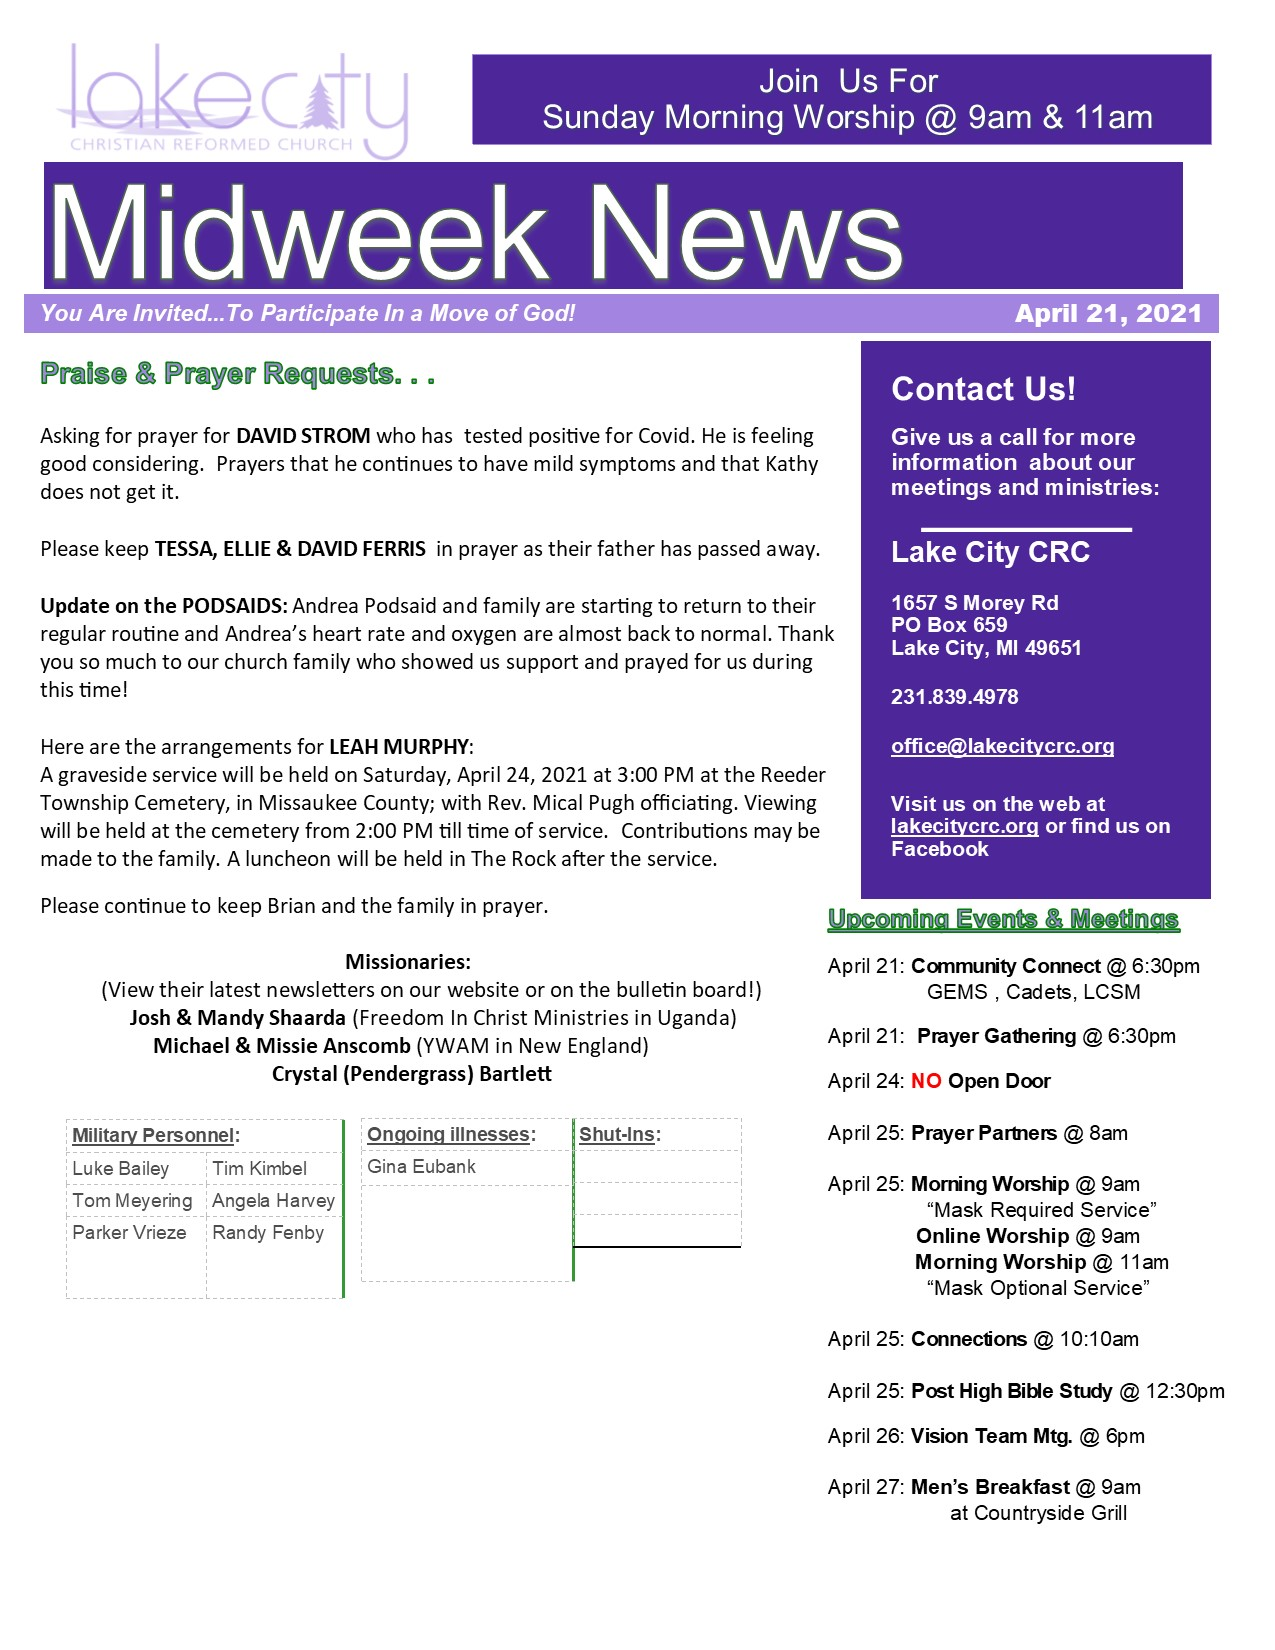 April 21, 2021 Mid-Week News